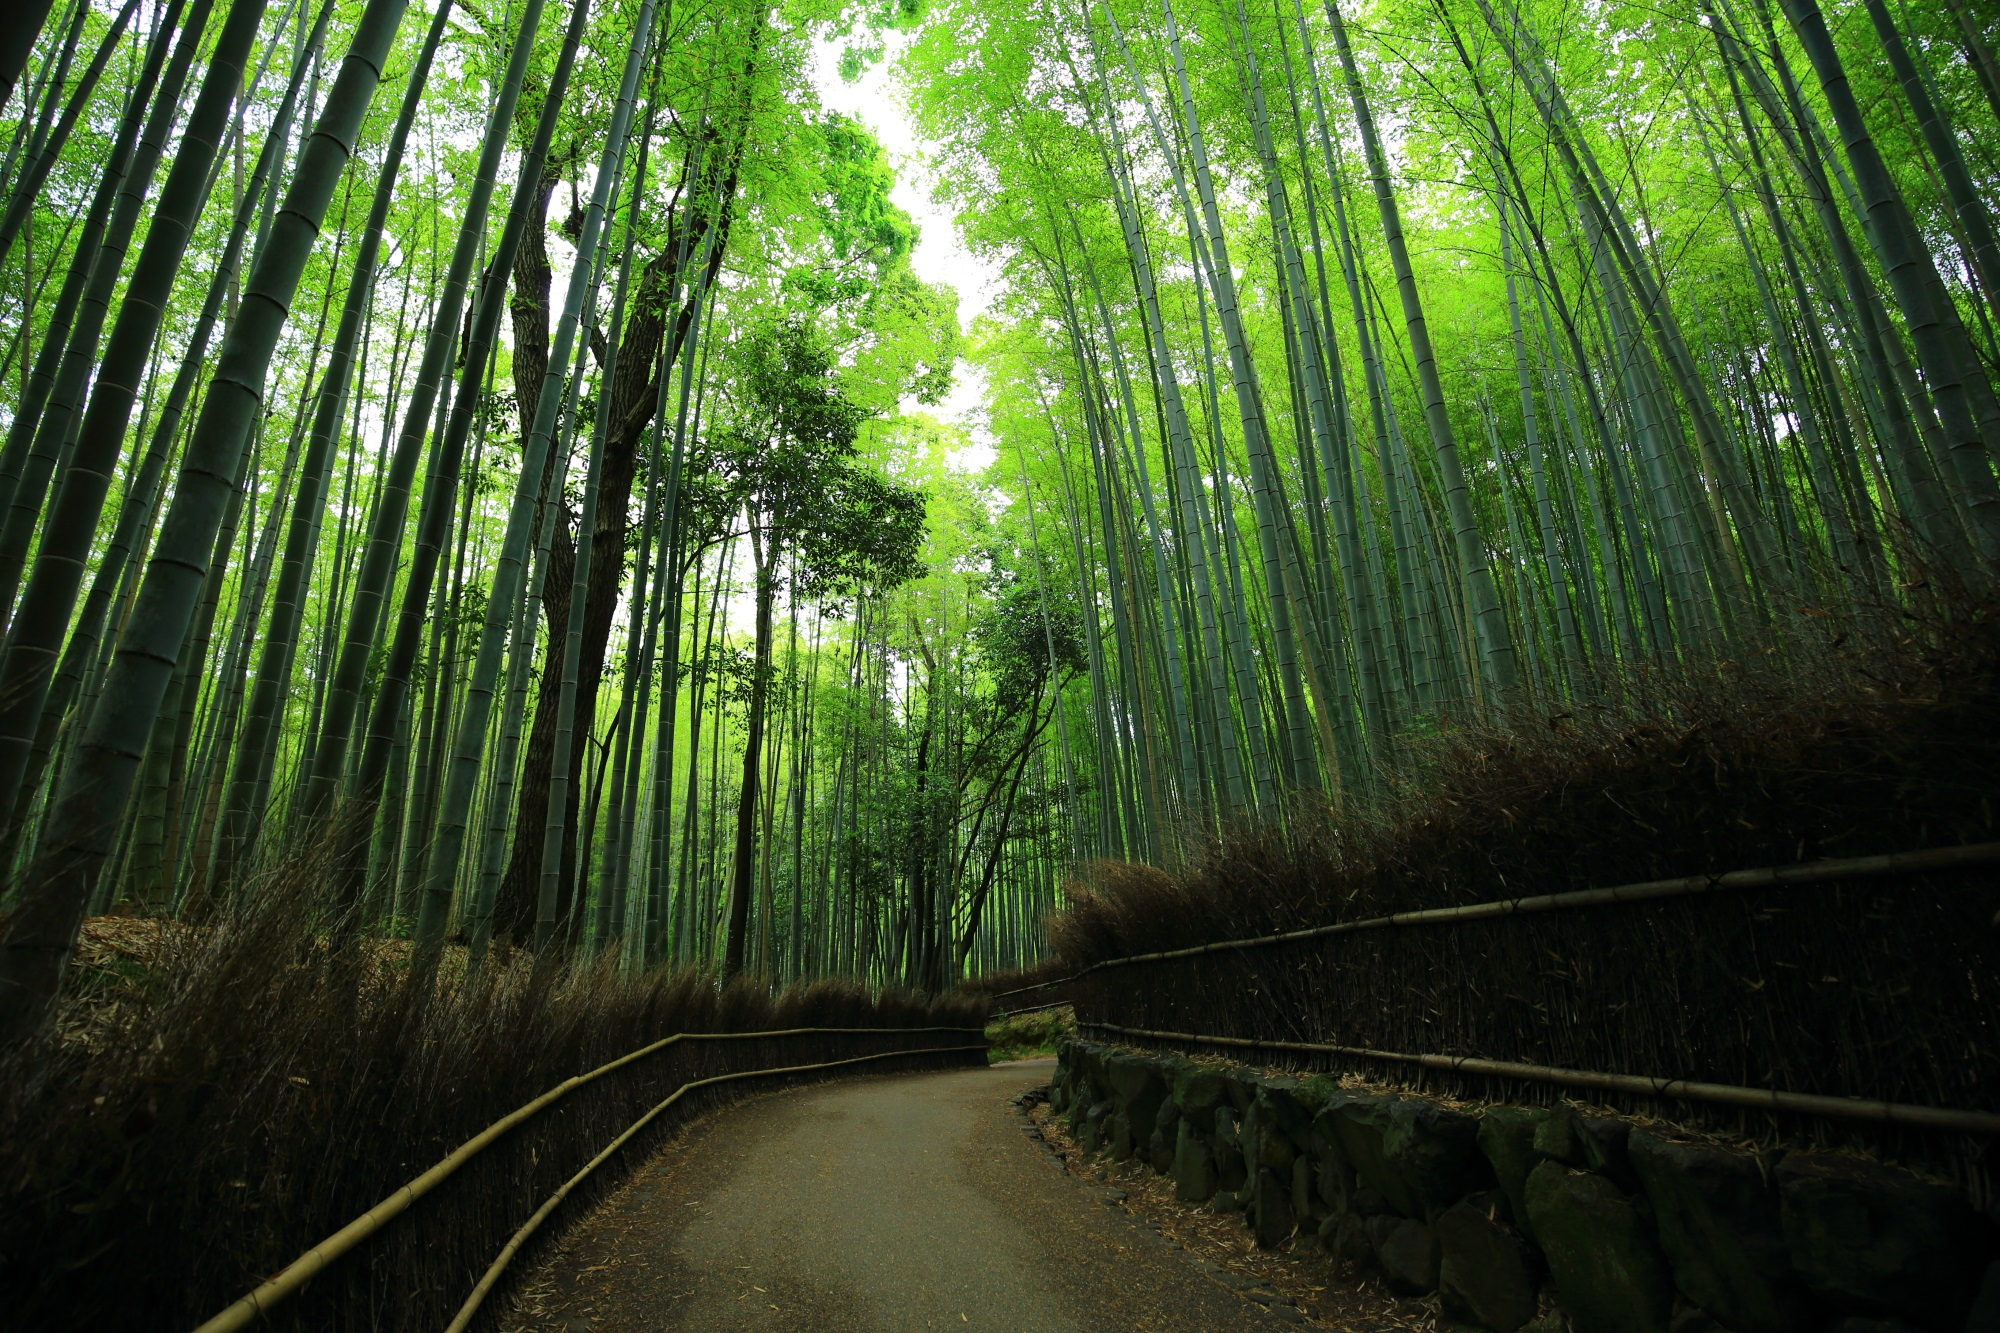 Chikurin-no-michi Arashiyama Kyoto Road of bamboo forest